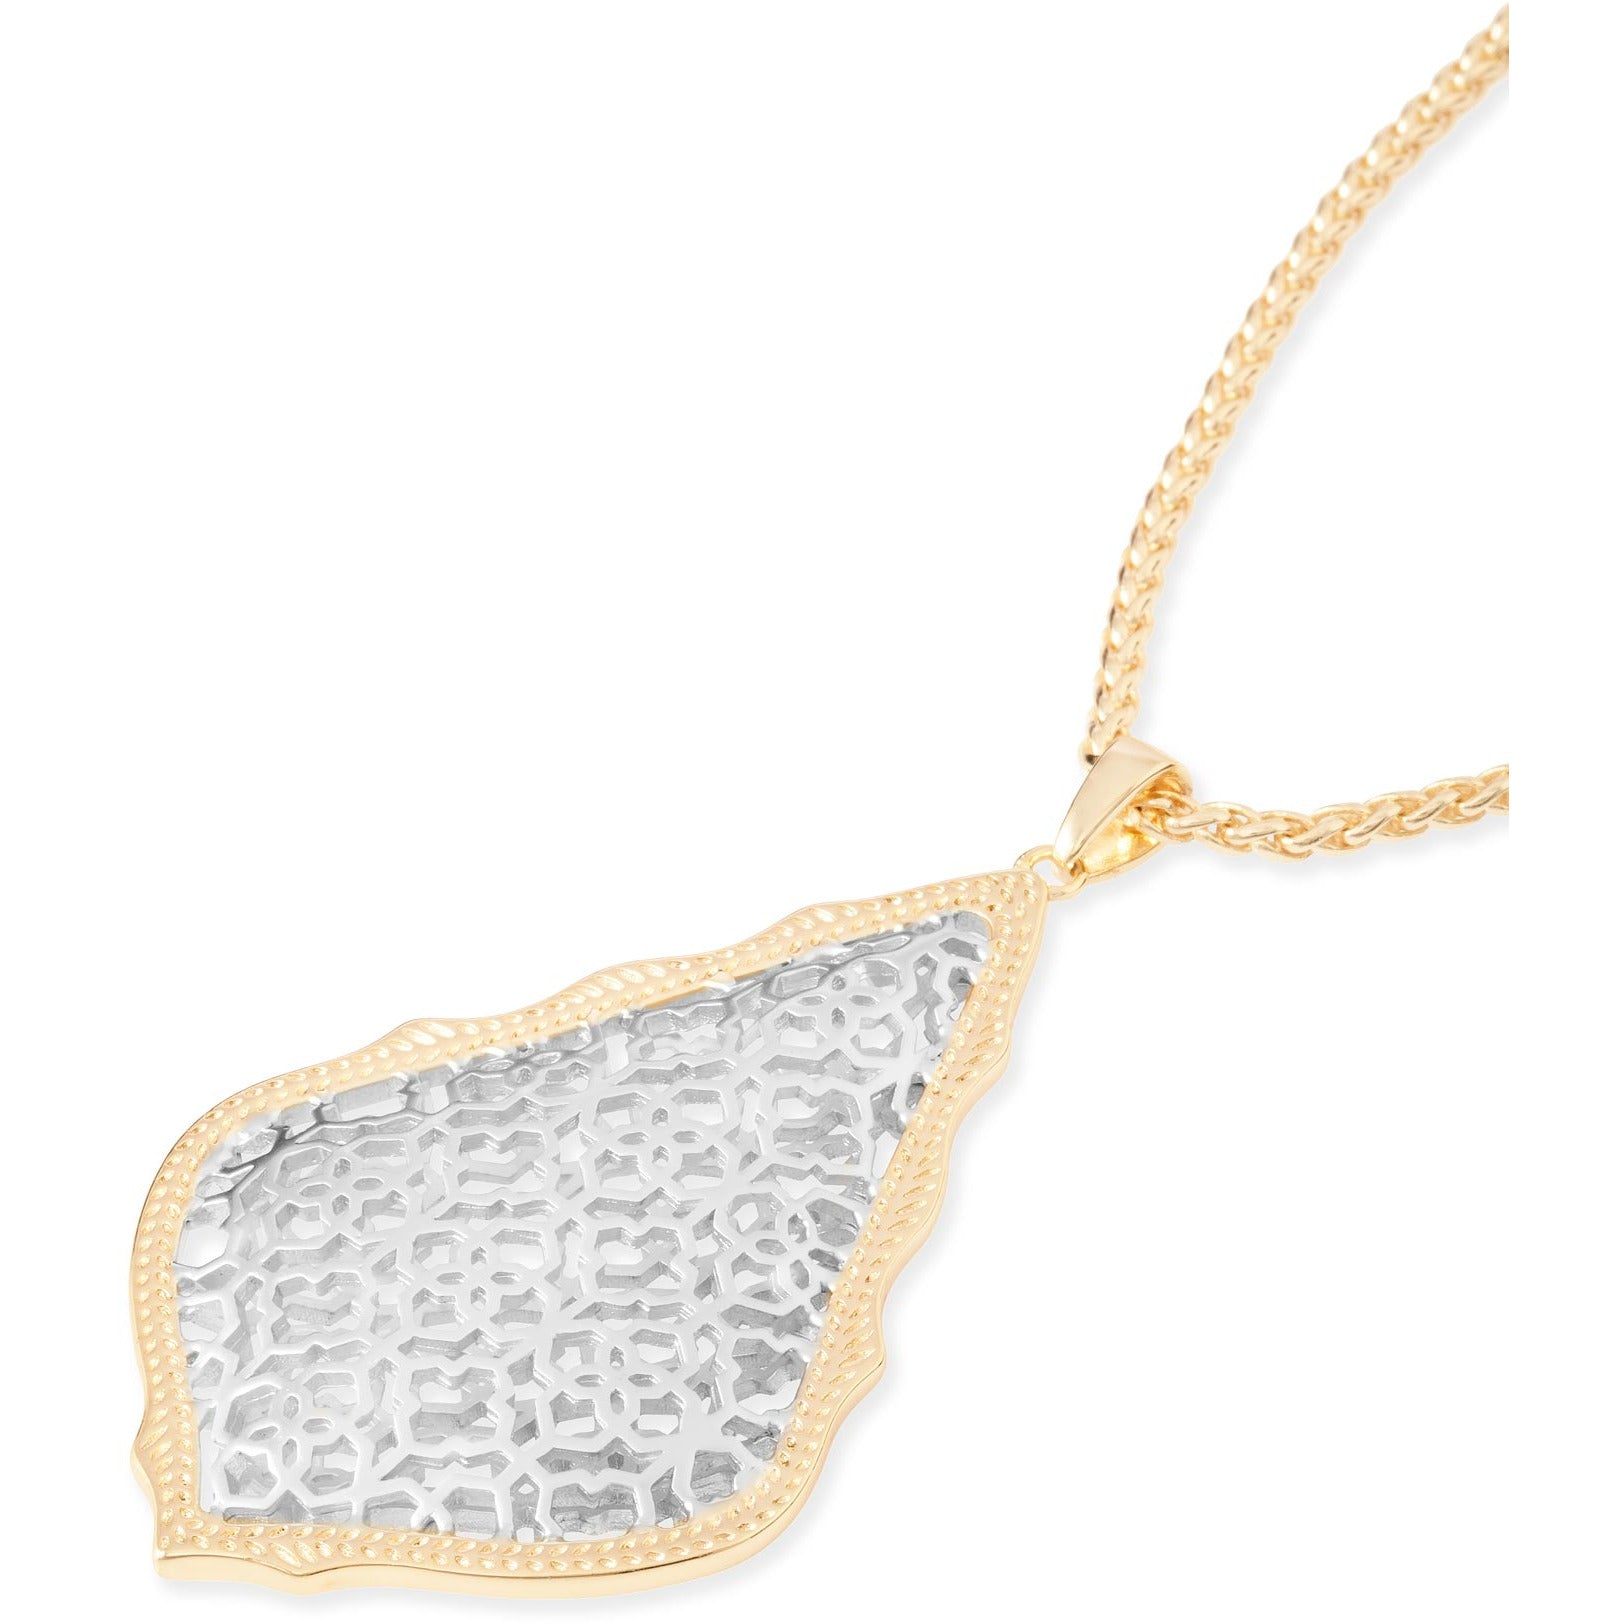 Kendra Scott -  Aiden Gold Long Pendant Necklace In Silver Filigree Mix